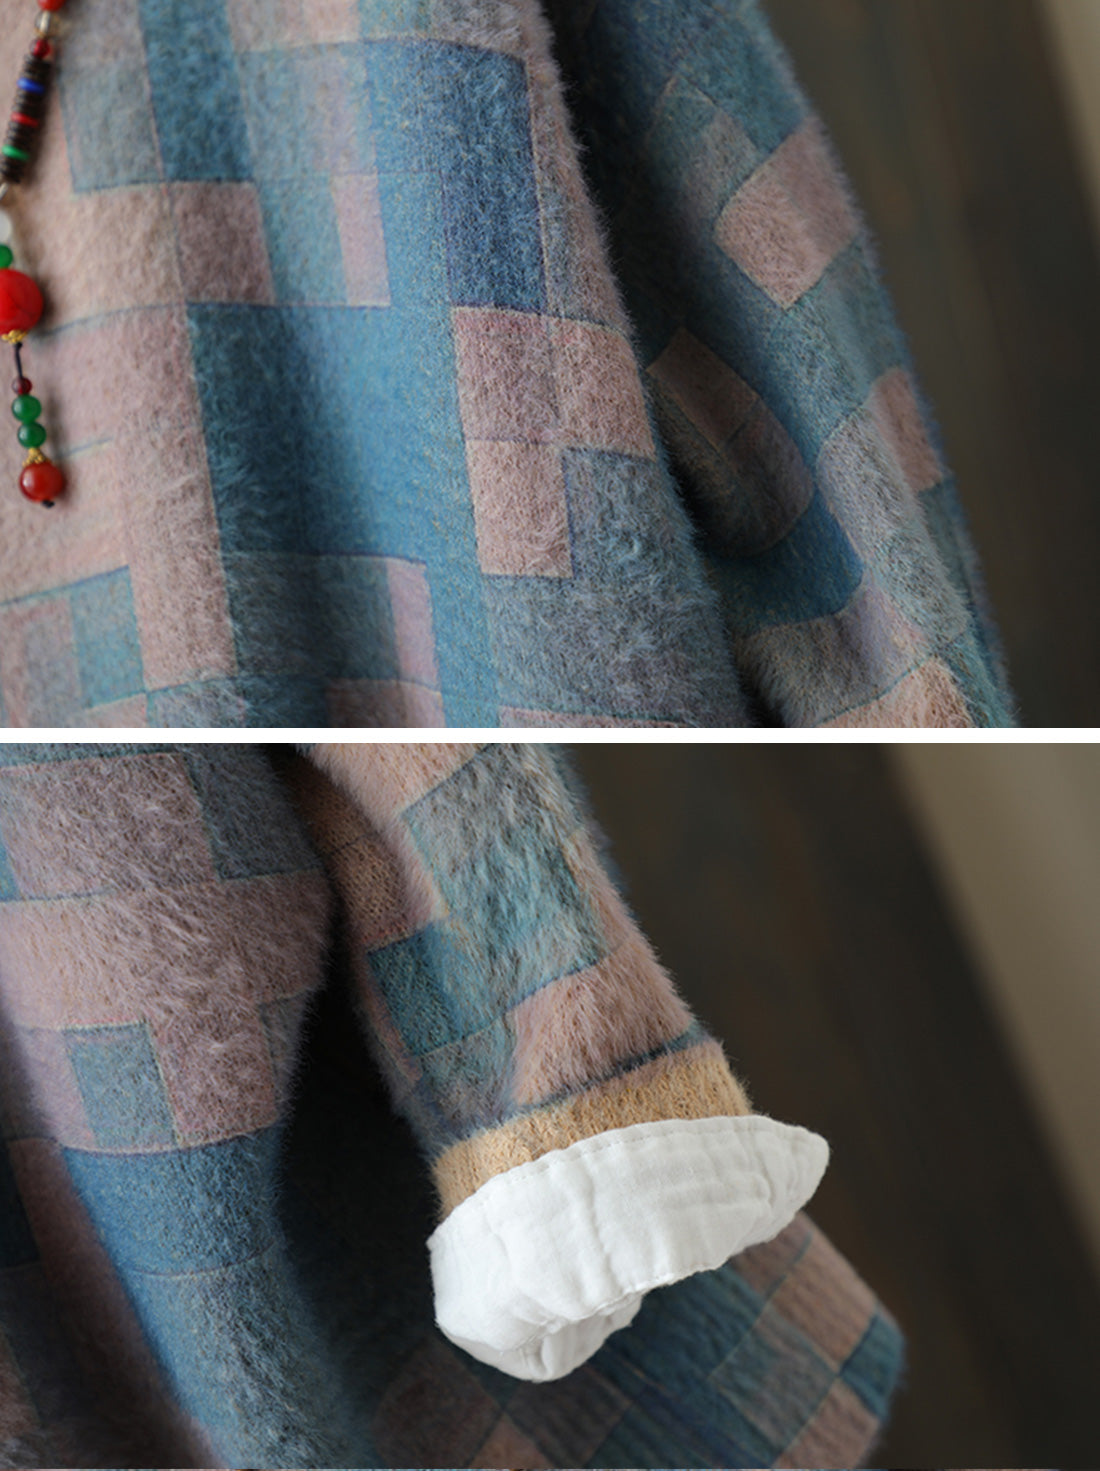 Color Block Lattice Cotton Sweater Details 2